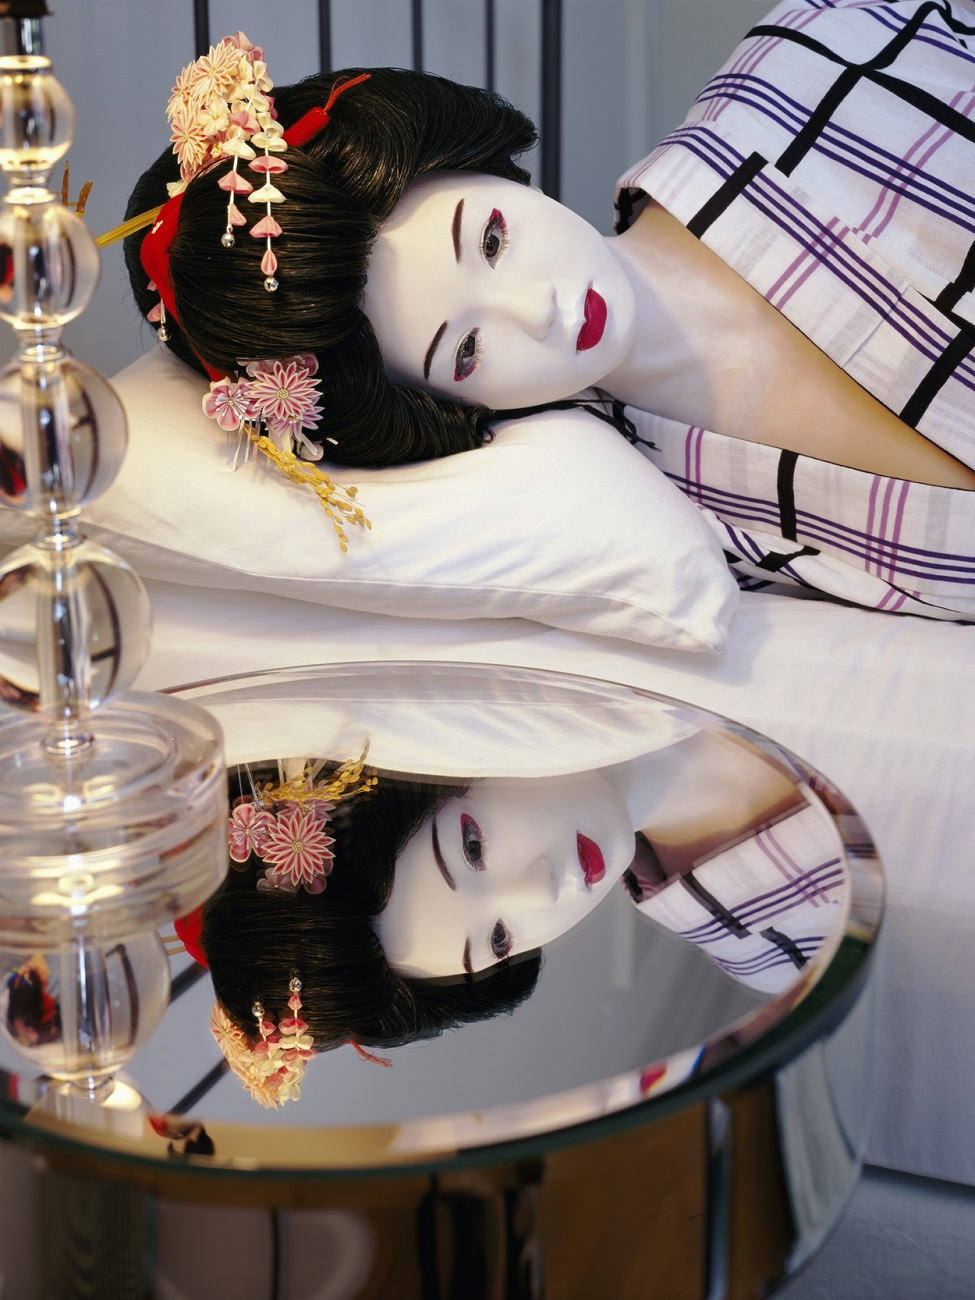 LAURIE SIMMONS 1